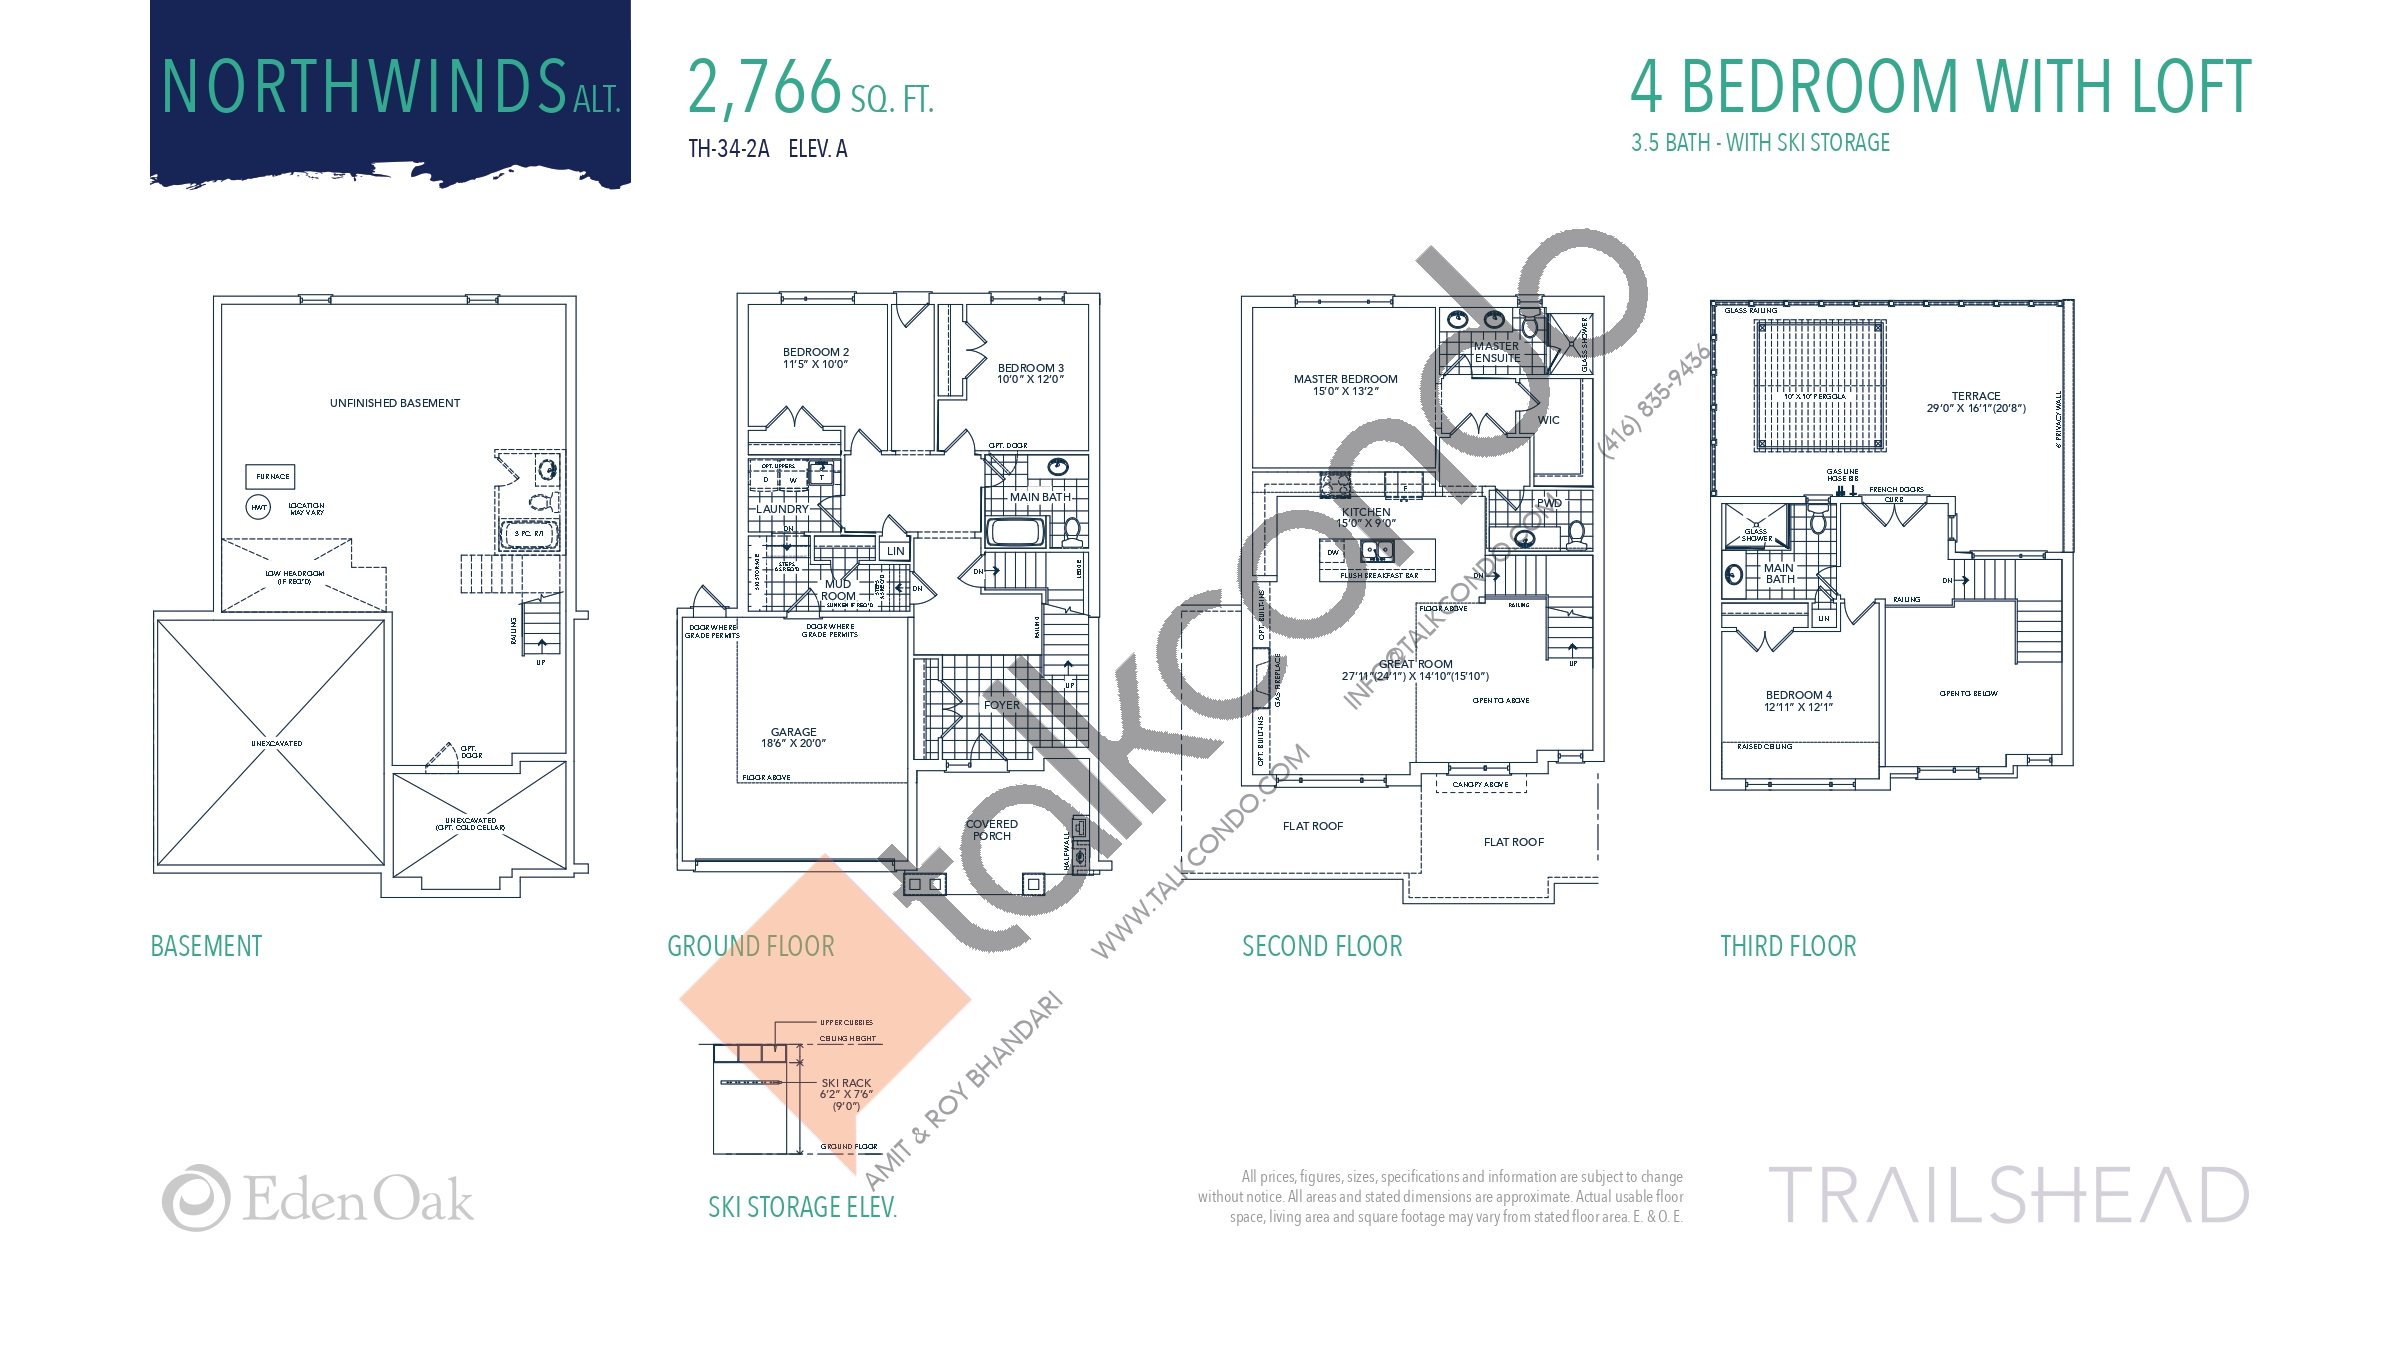 Northwinds Alt. (1/2) Floor Plan at Trailshead Towns - 2766 sq.ft